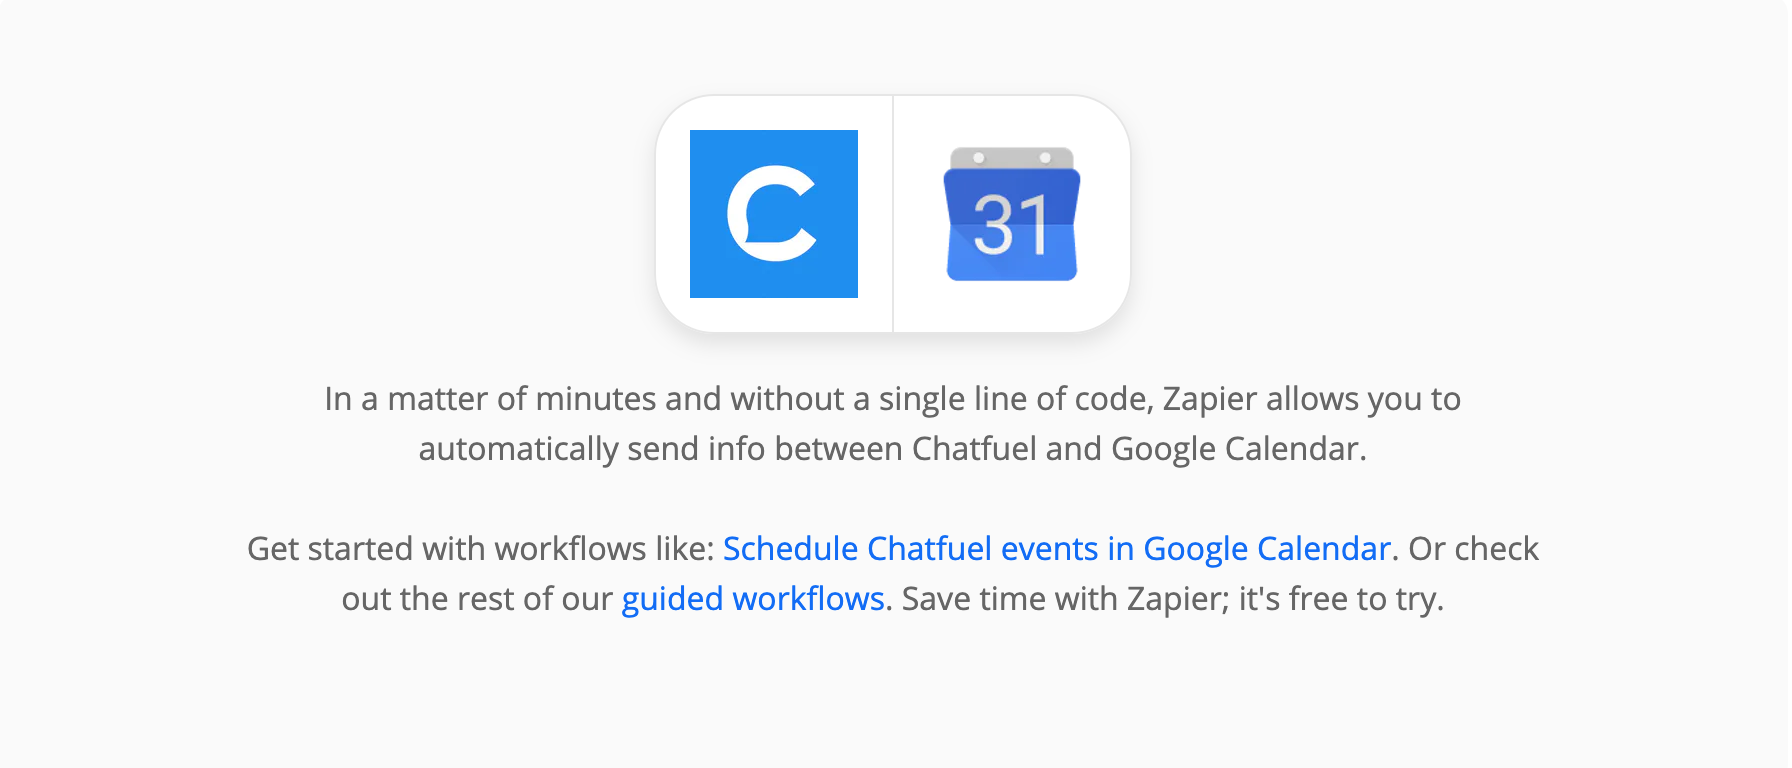 Zaps for event scheduling